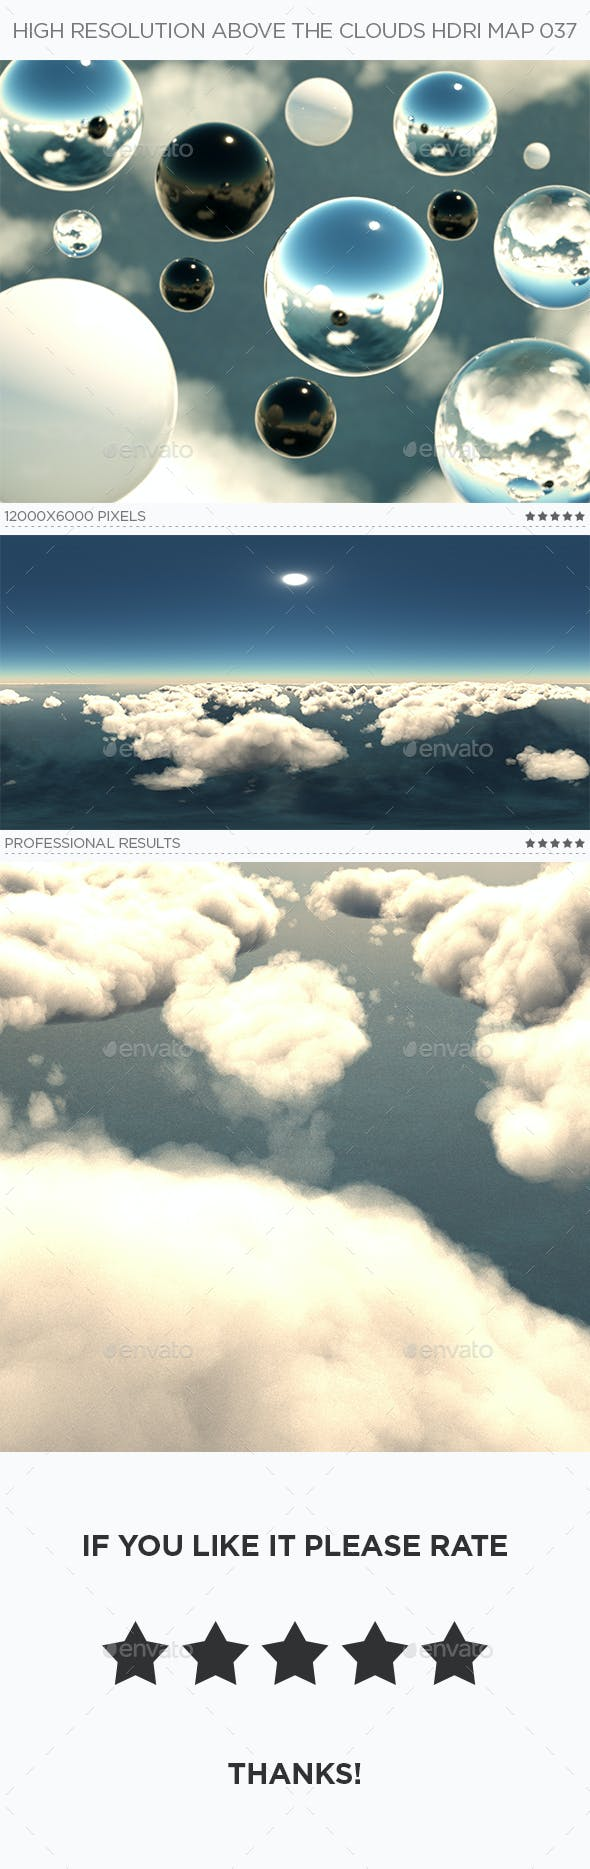 High Resolution Above The Clouds HDRi Map 037 - 3DOcean Item for Sale